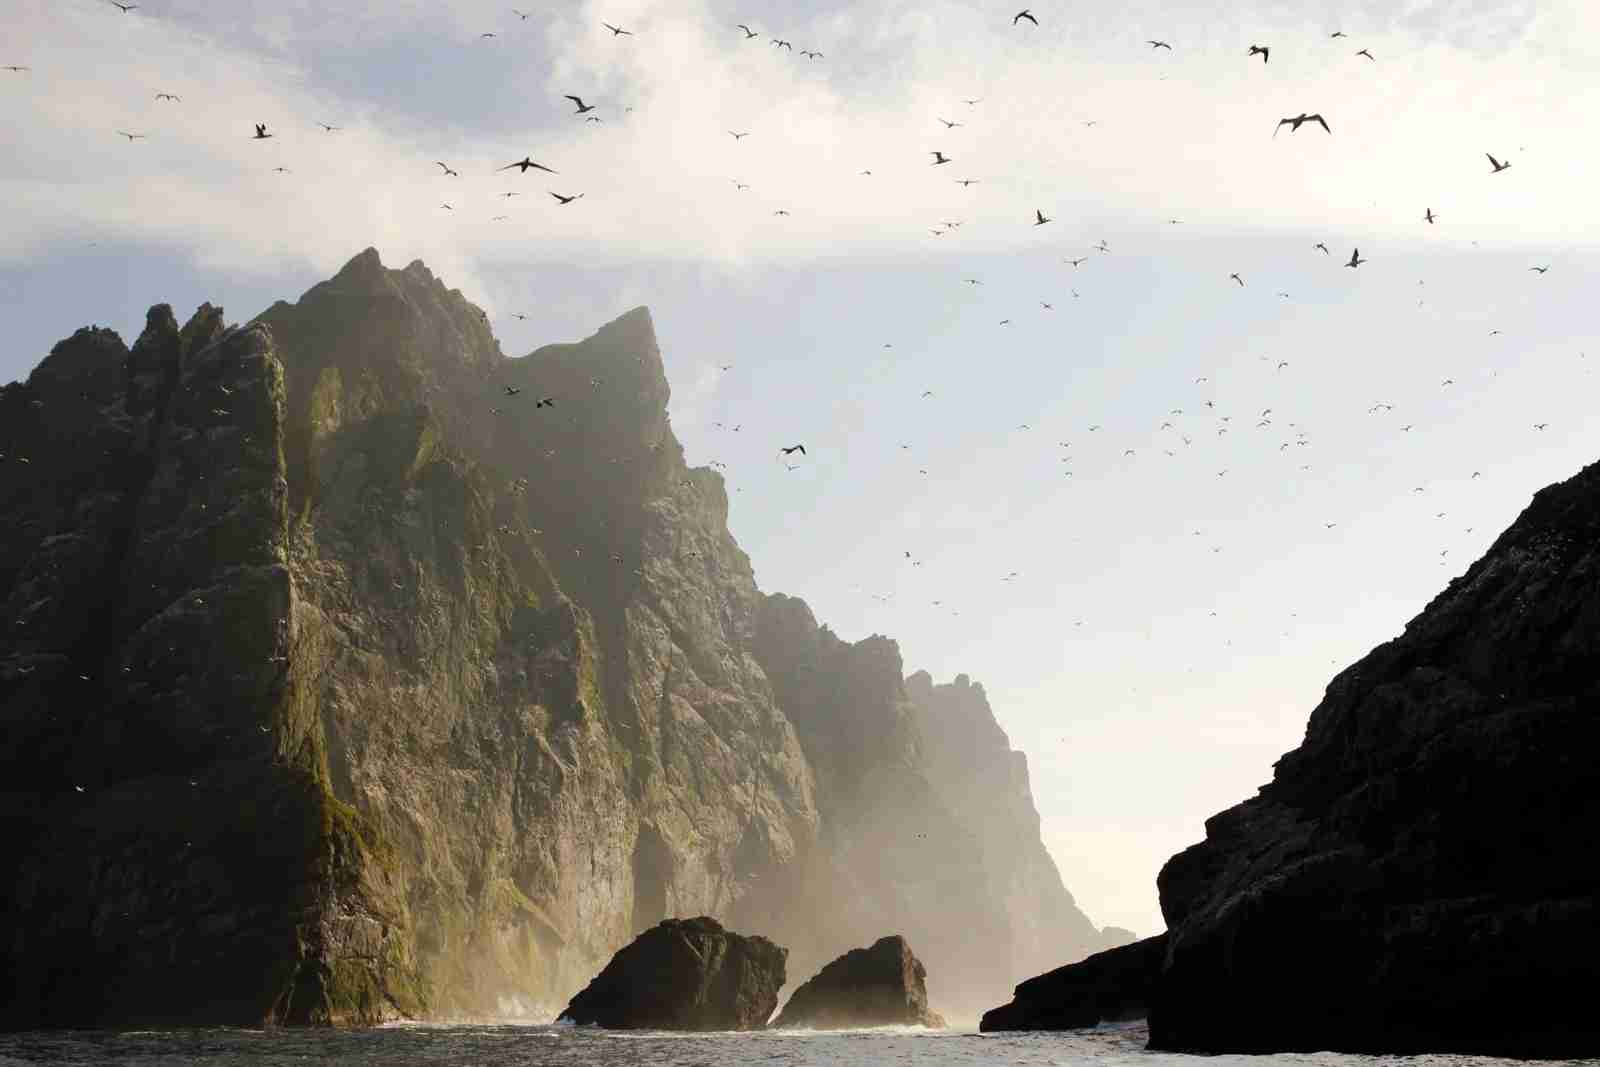 The steep cliffs of St Kilda. (Photo by claffra/Getty Images)